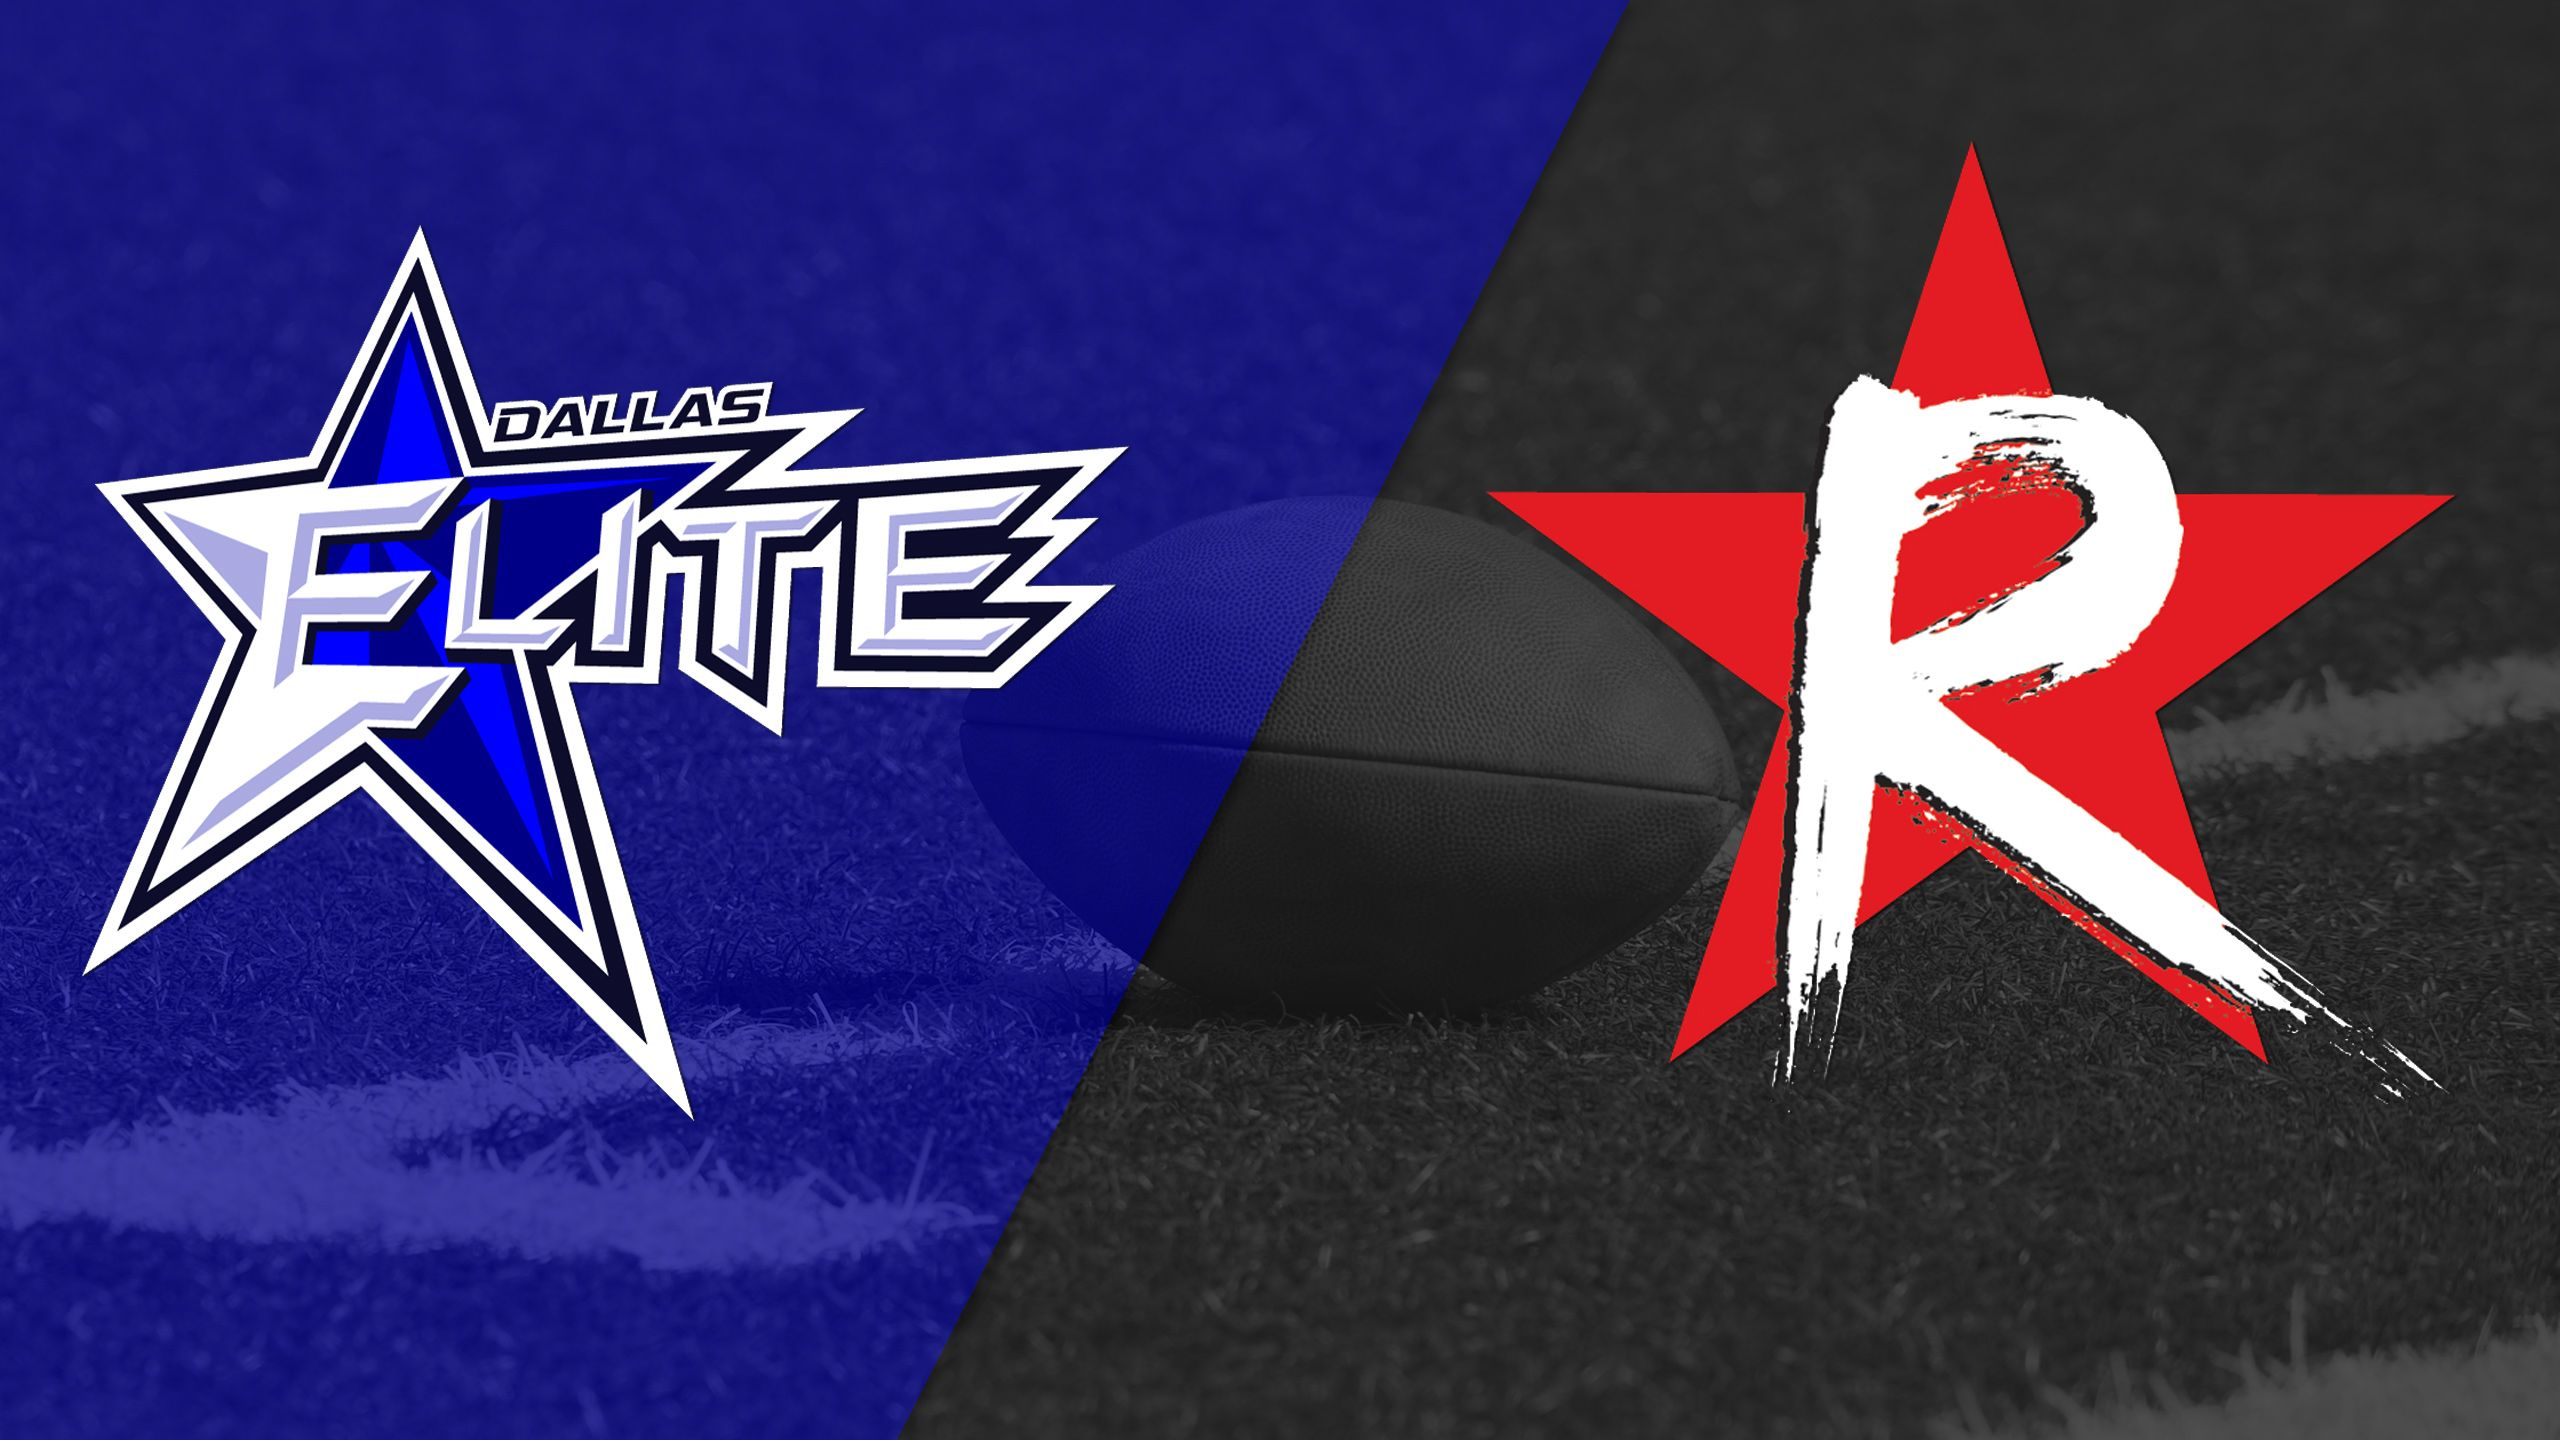 Dallas Elite vs. Boston Renegades (The W Bowl)